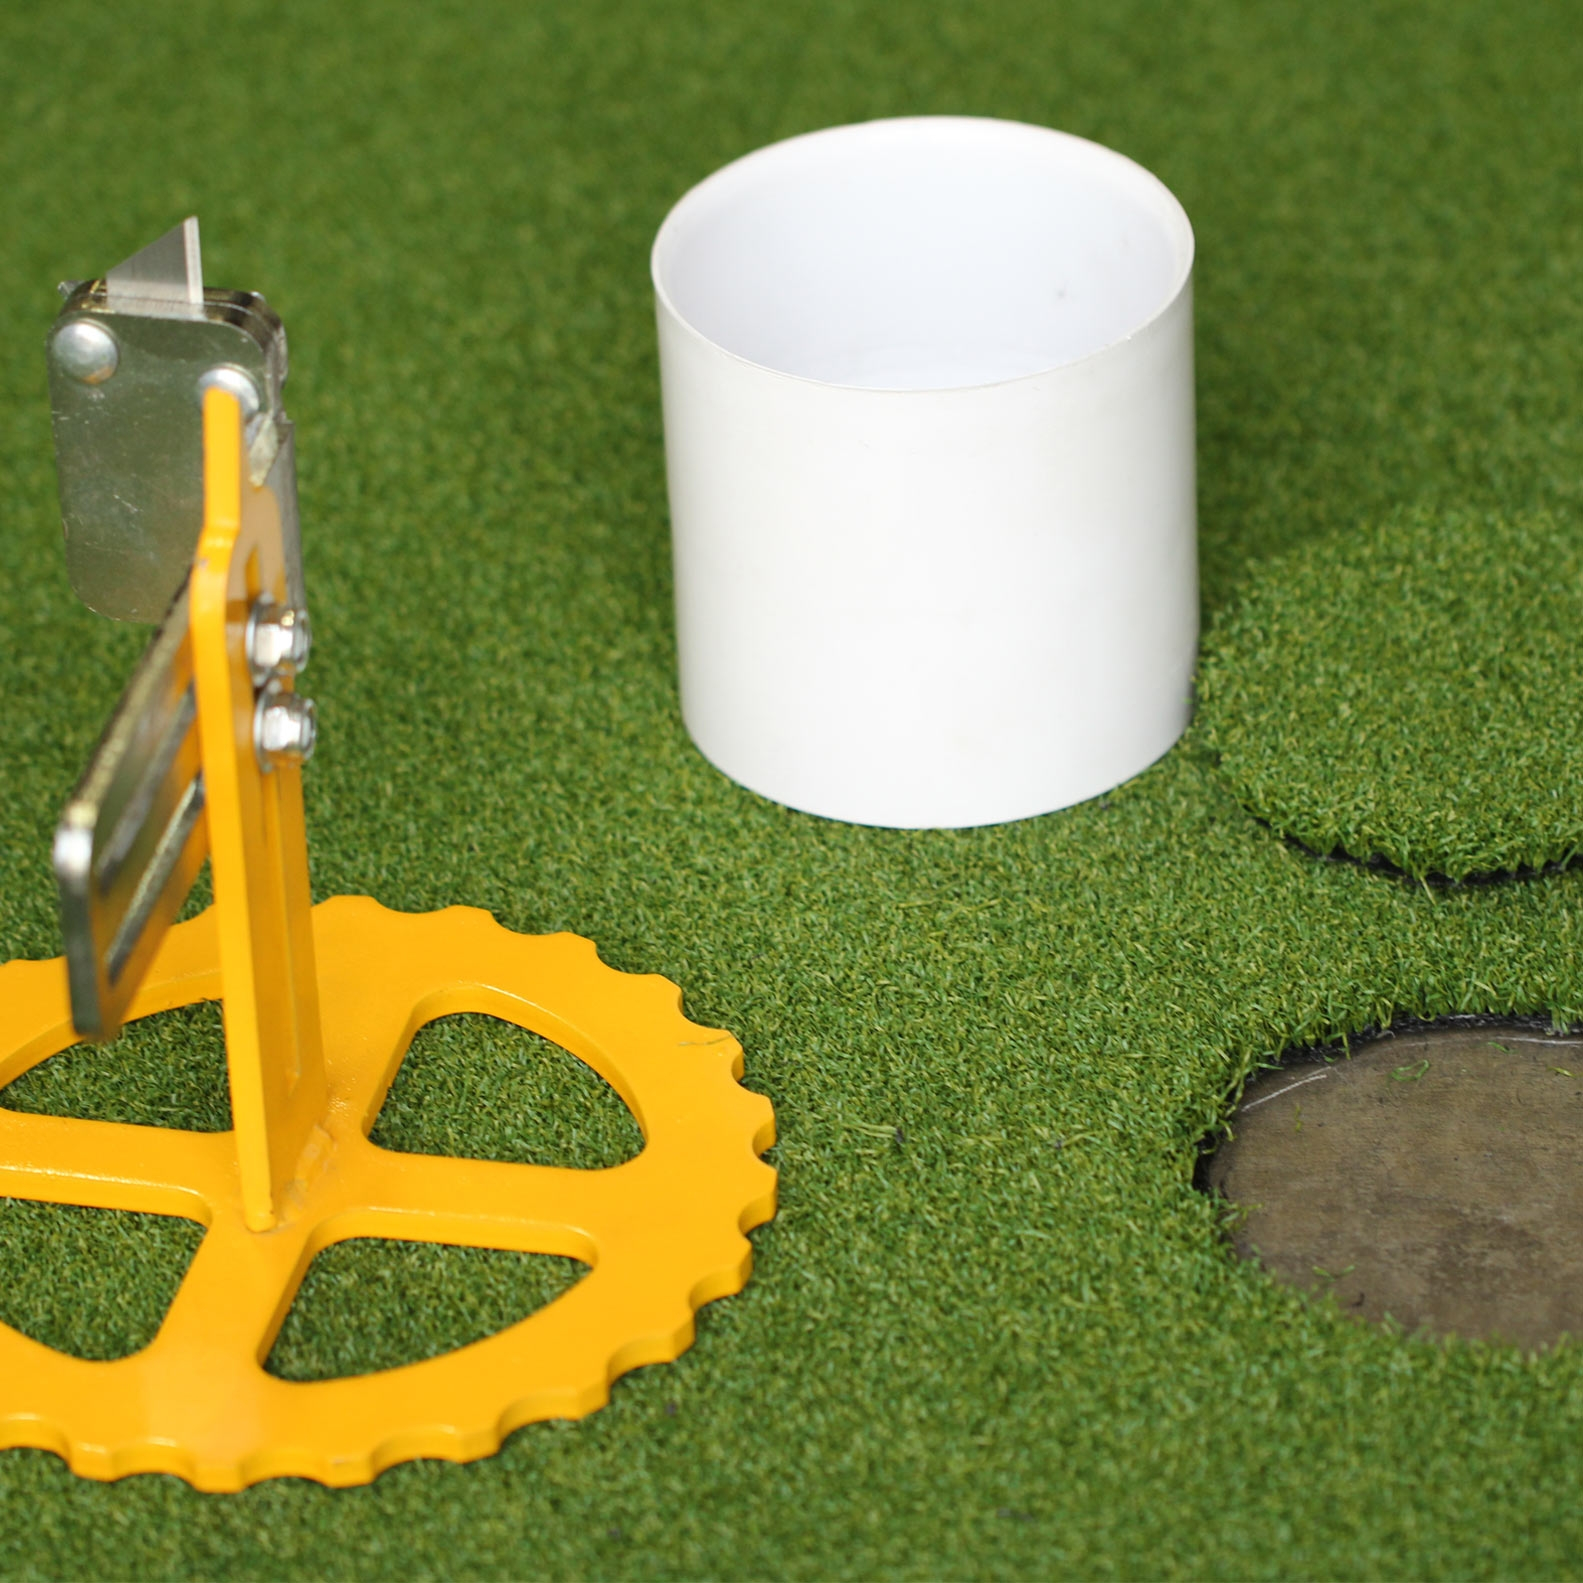 Cut circles in golf putting greens. Circle Cutter Tool. Artificial Grass Installation